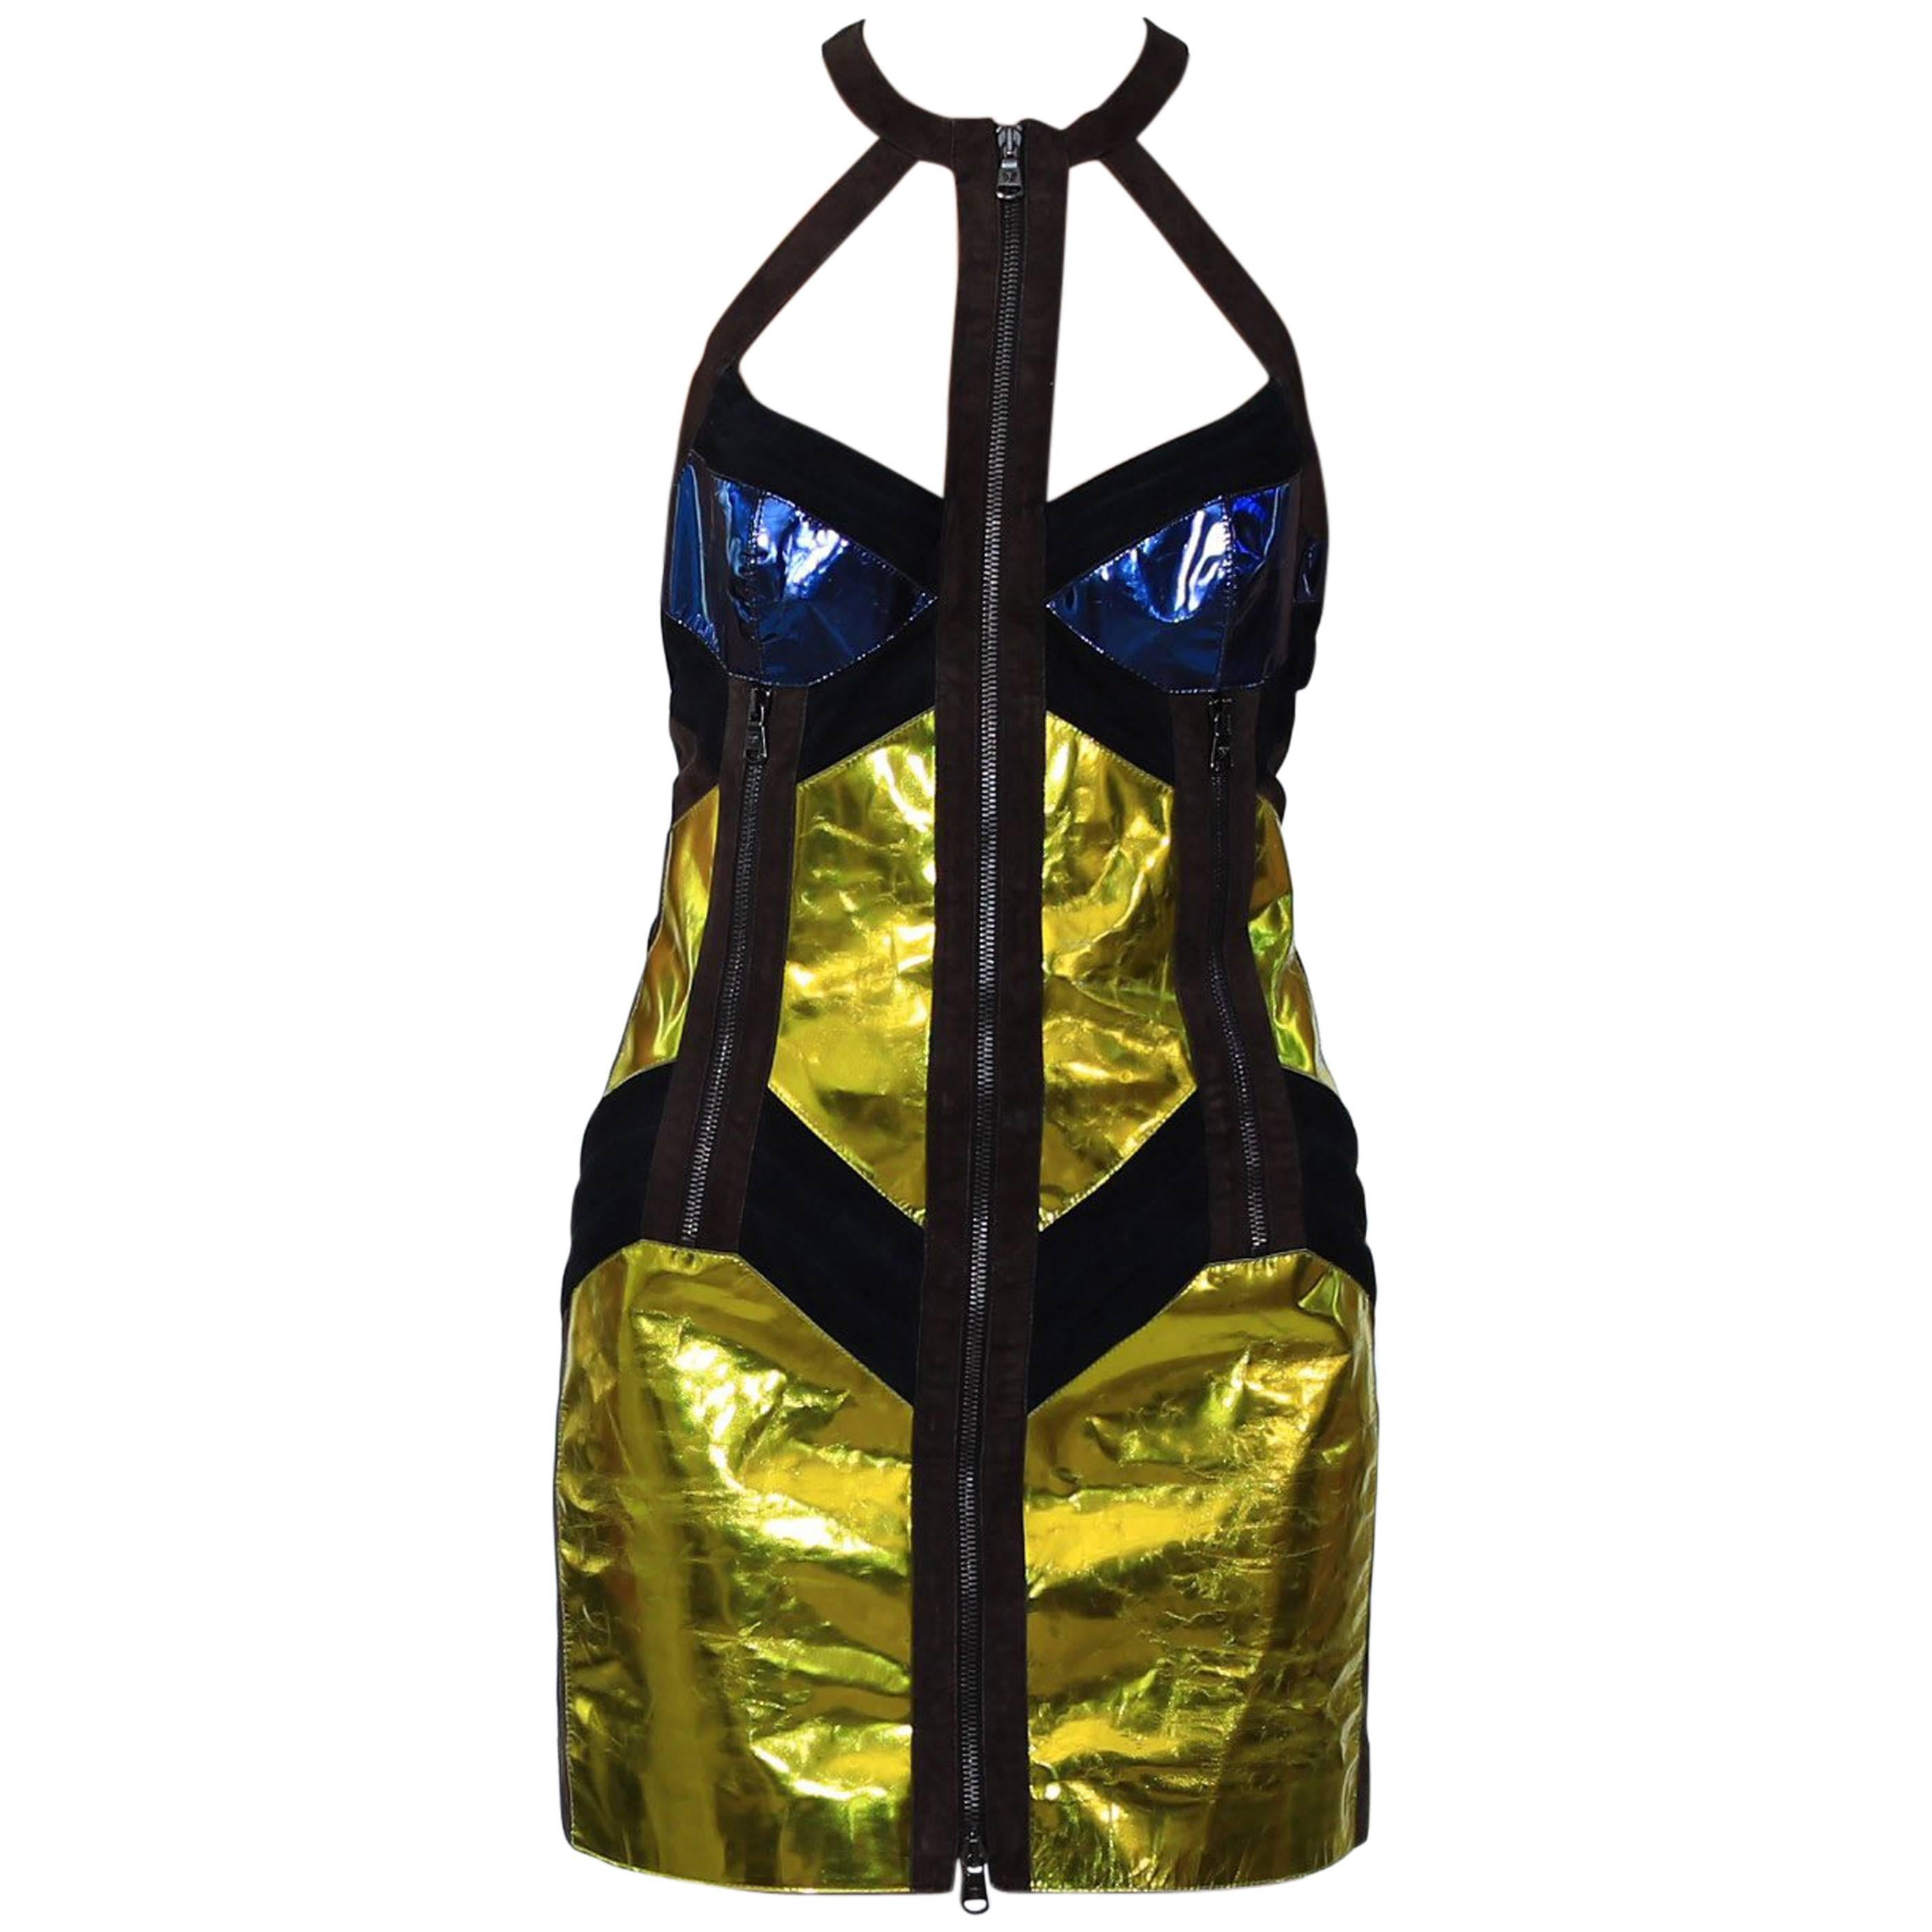 35021d72e64 VERSUS VERSACE + Anthony Vaccarello embellished stretch mini dress at  1stdibs